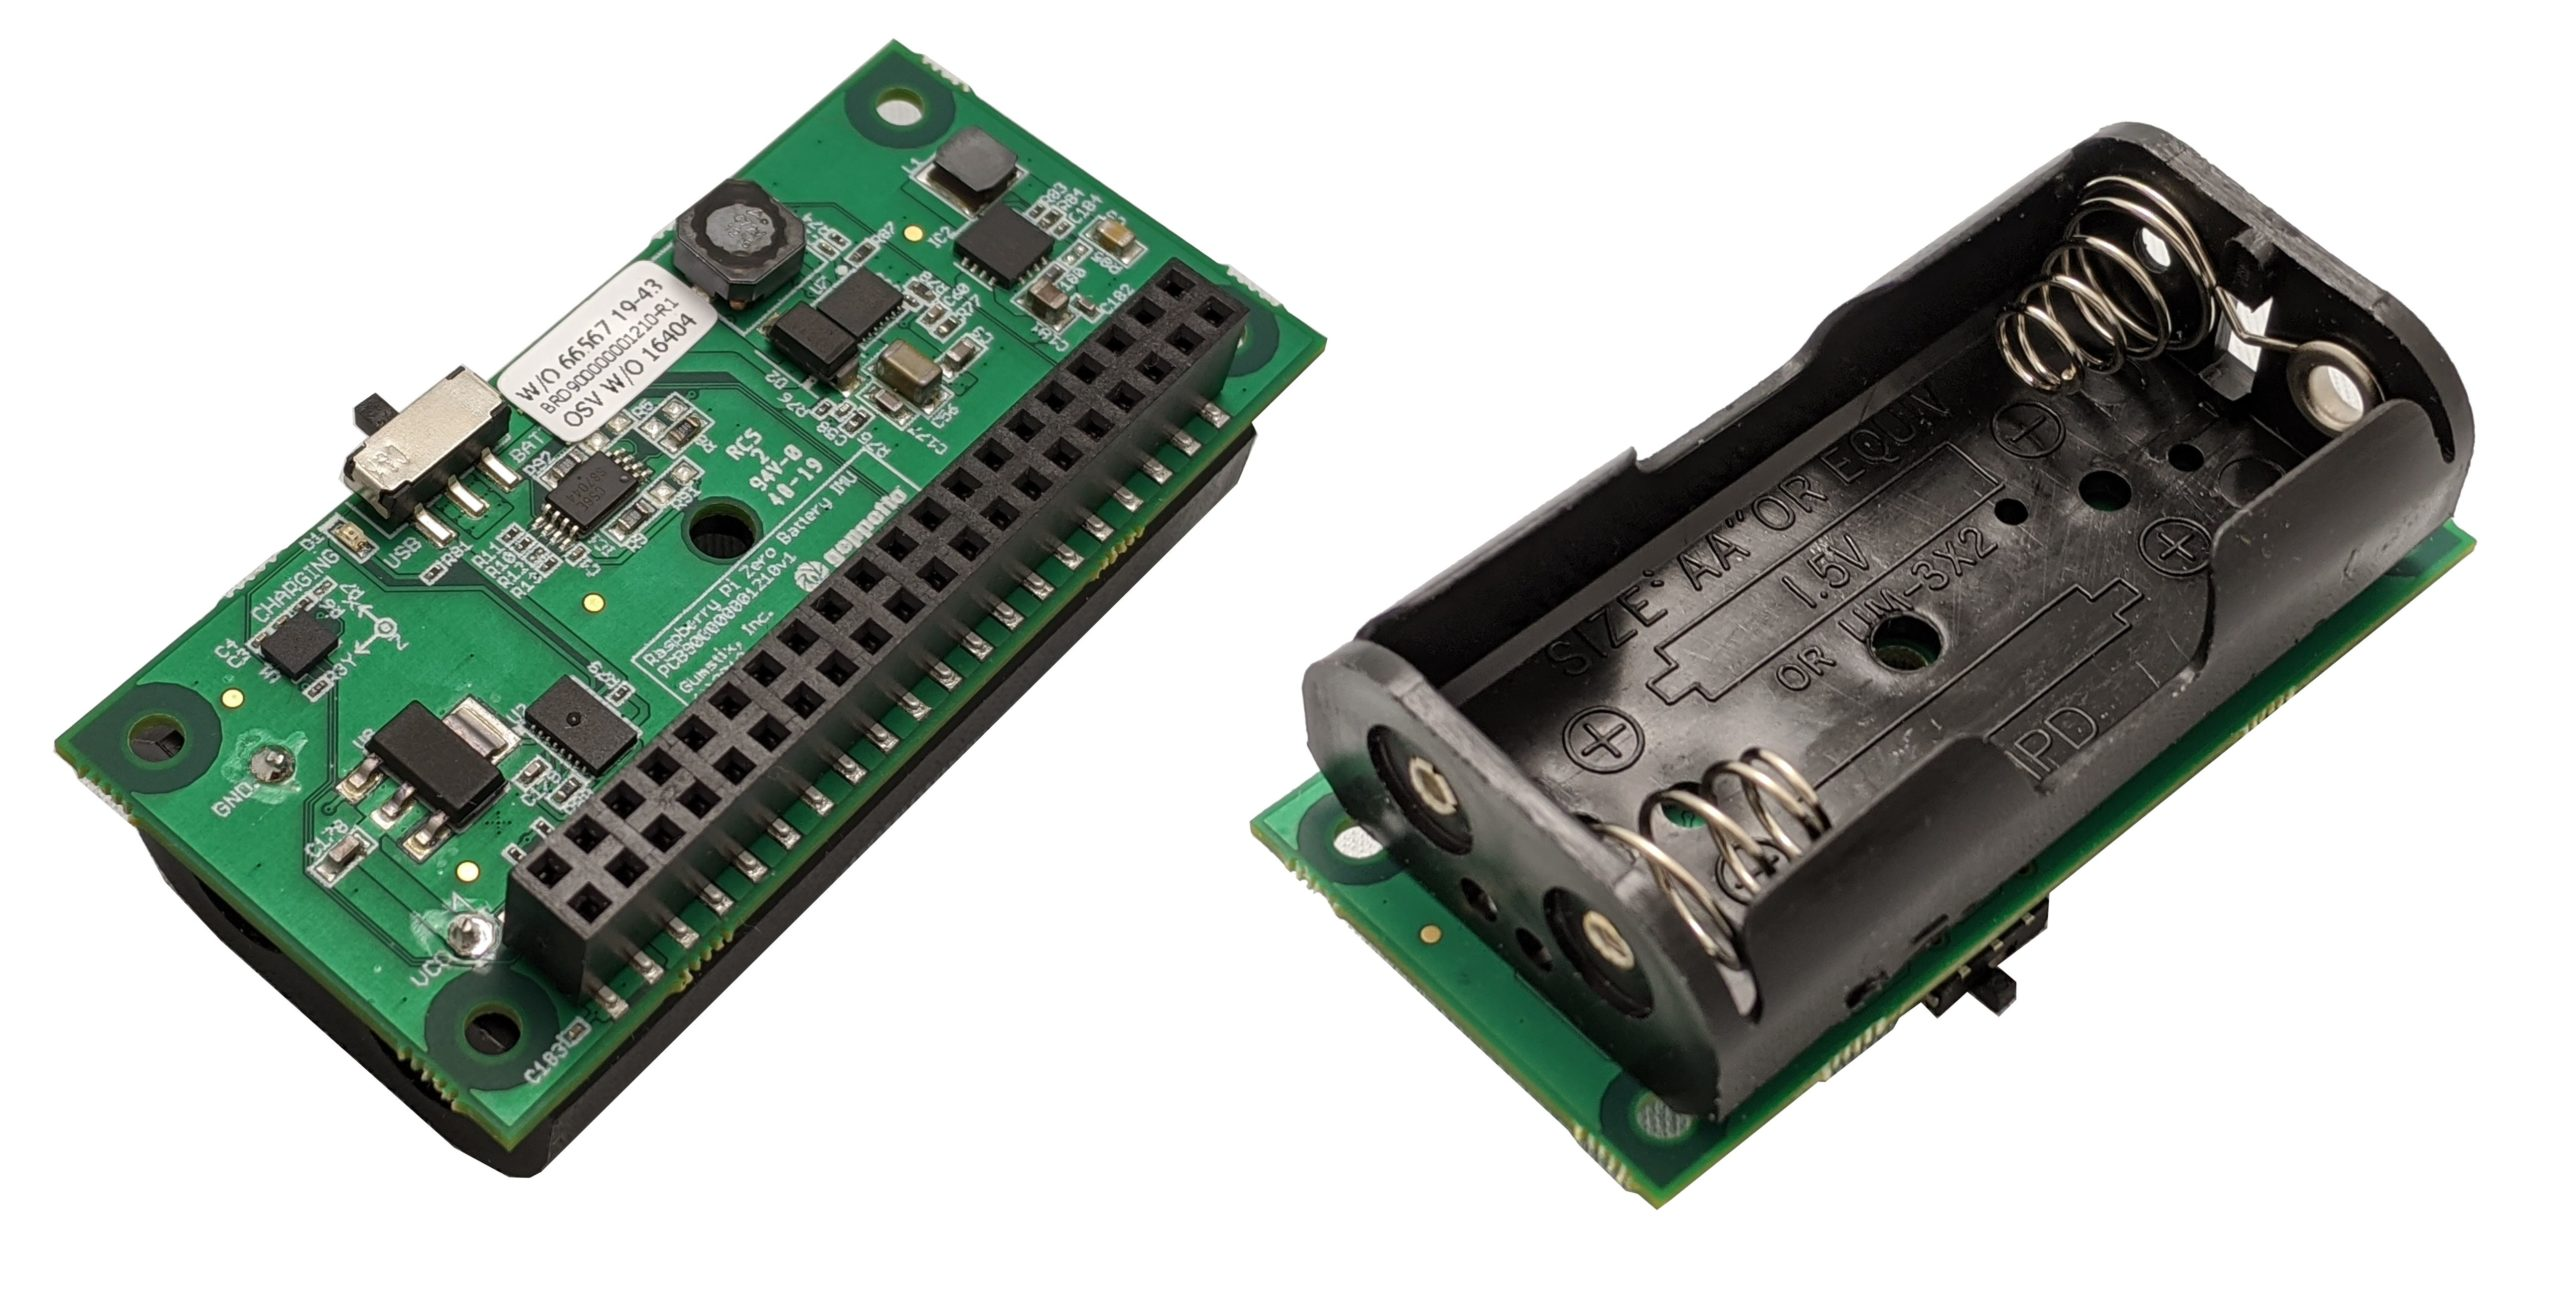 Gumstix Raspberry Pi Zero Battery Board offers two-hour mobility